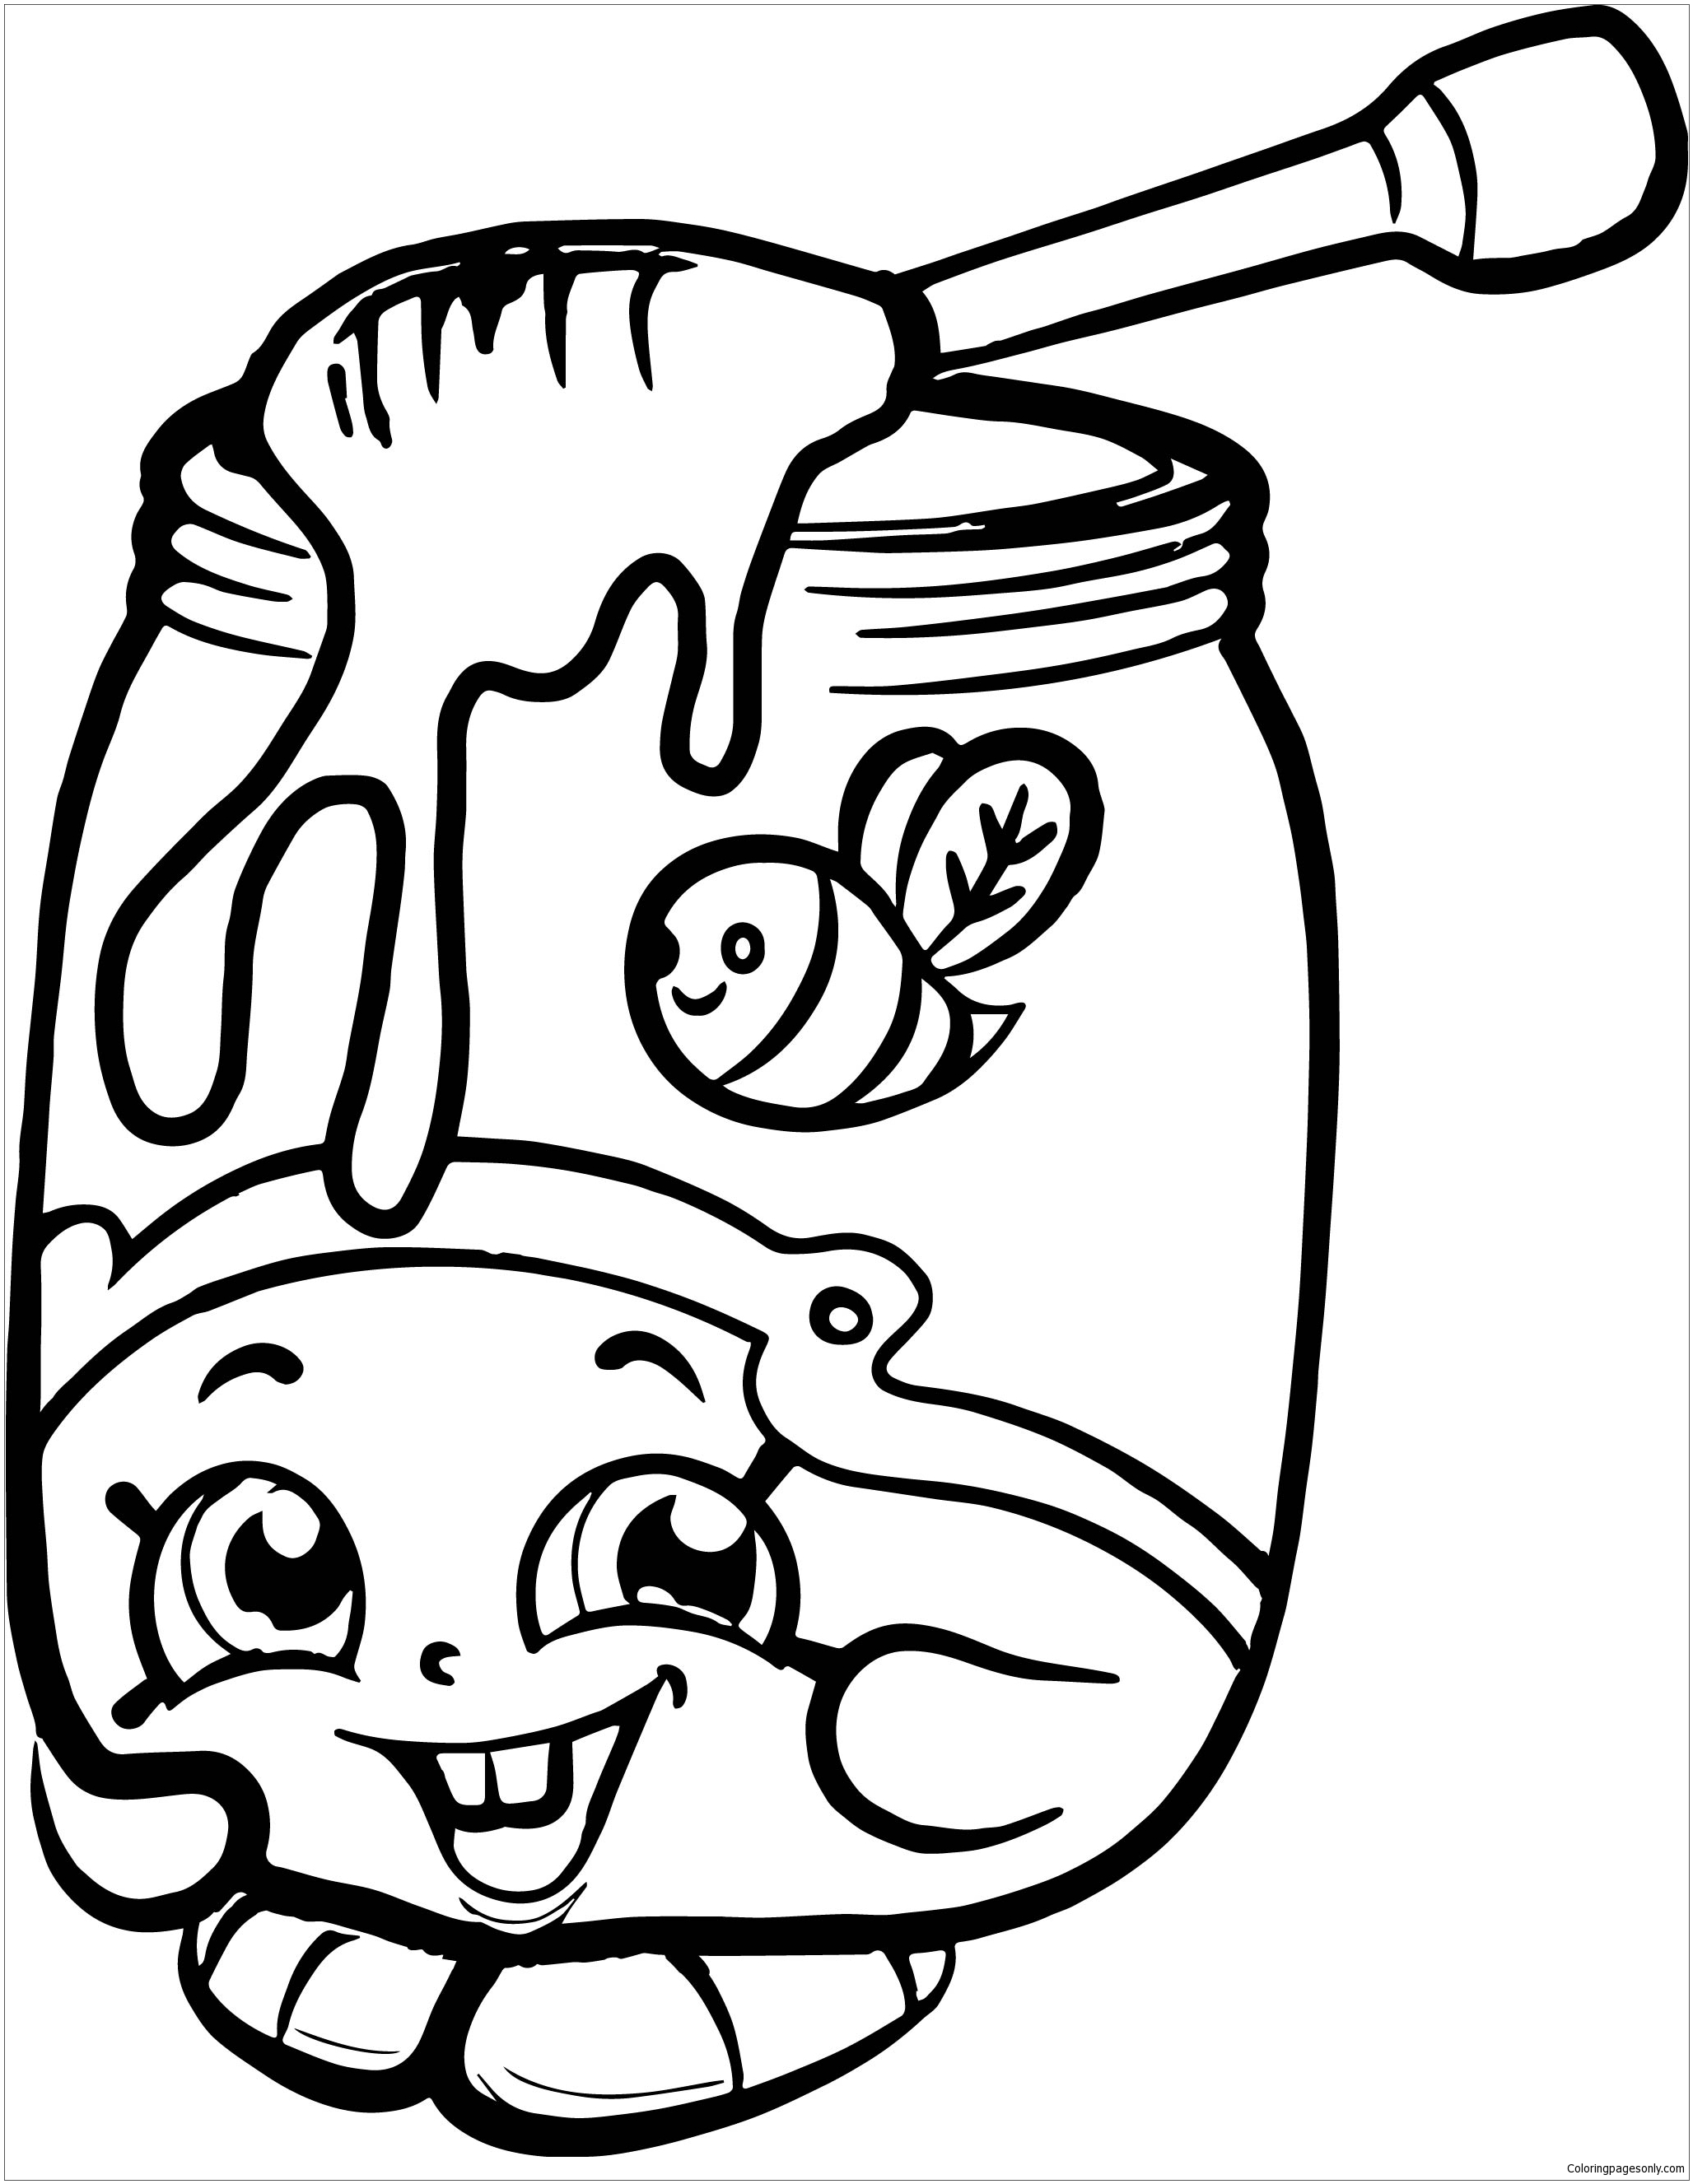 Shopkins Giant Coloring Book Page With A Honey Jar